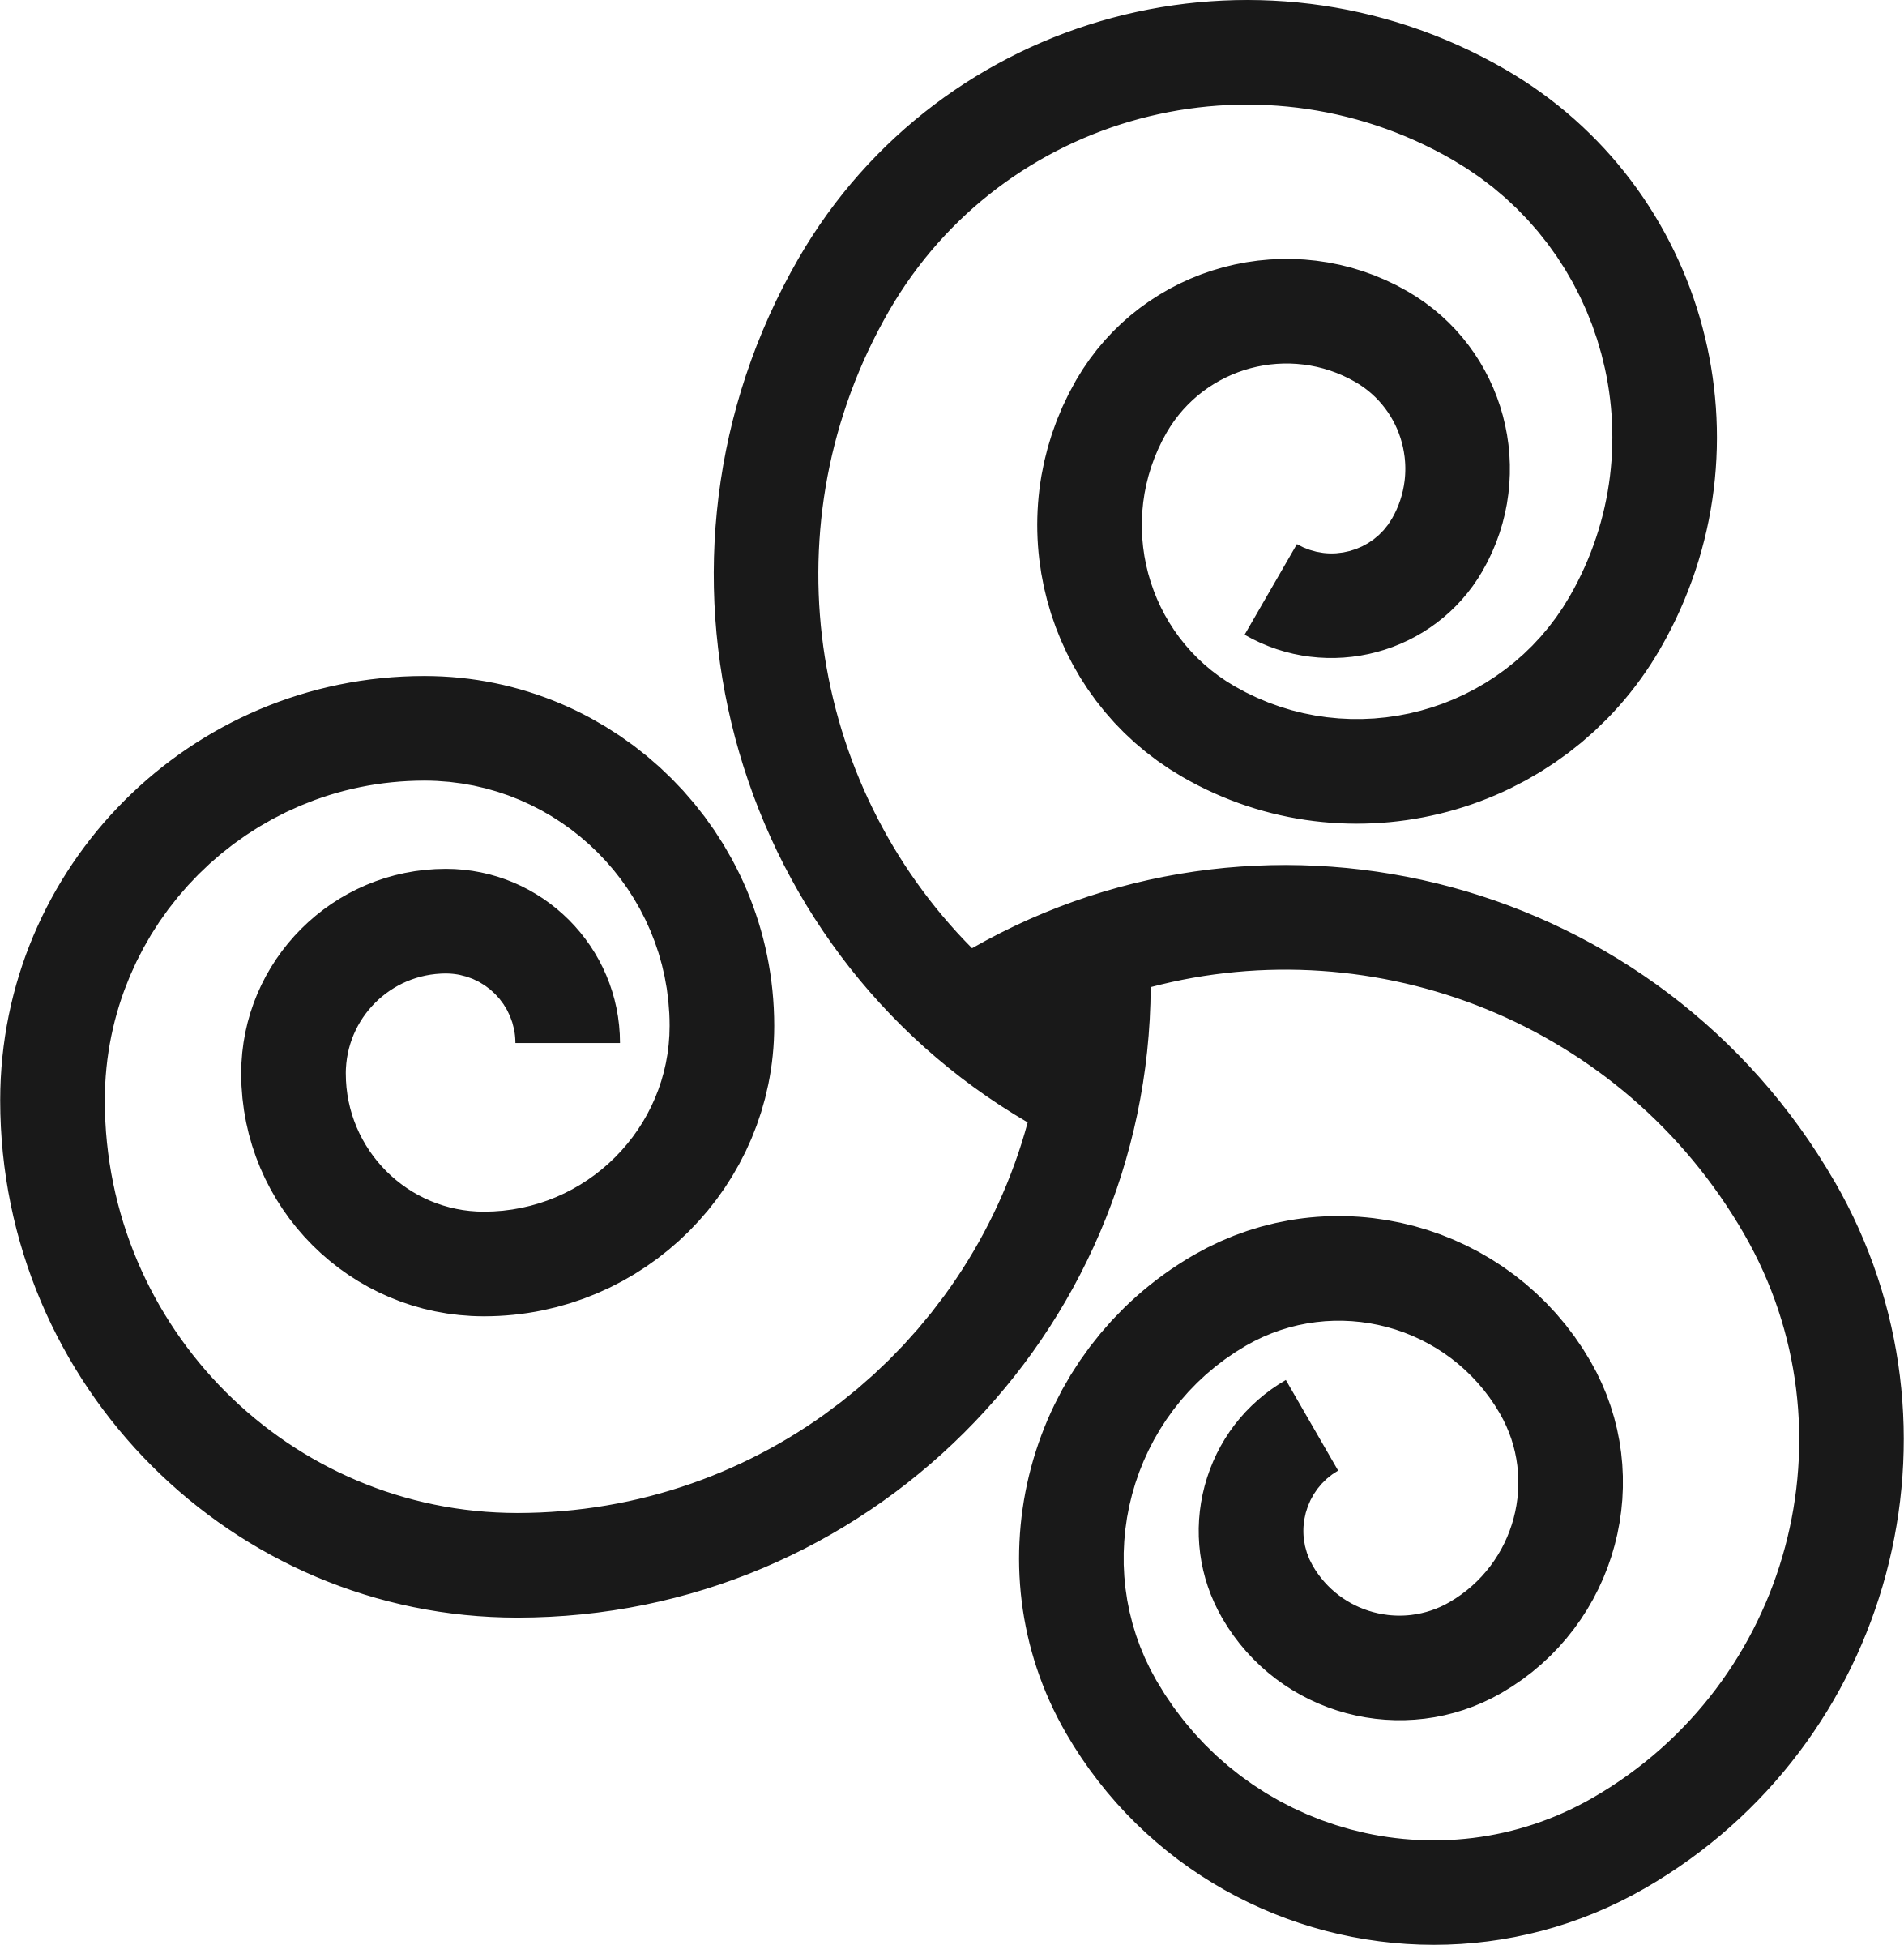 Triskelion by cinemacookie